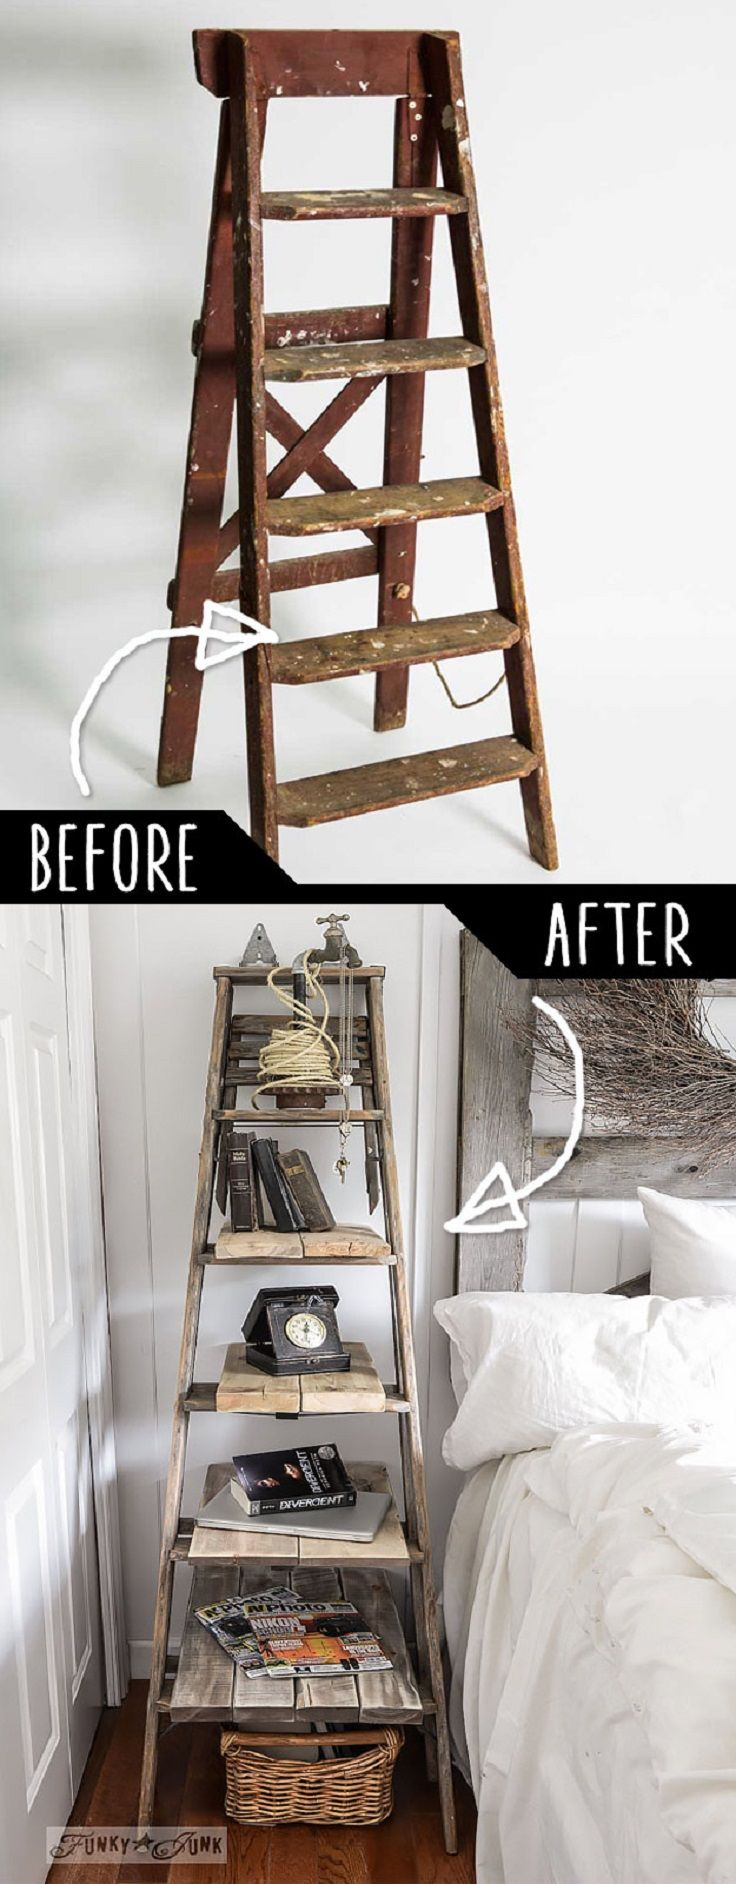 We Could Make A Really Cheap Place Awesome Pretty Easily. Step Ladder Side  Table DIY   16 Best DIY Furniture Projects Revealed U2013 Update Your Home On A  ...